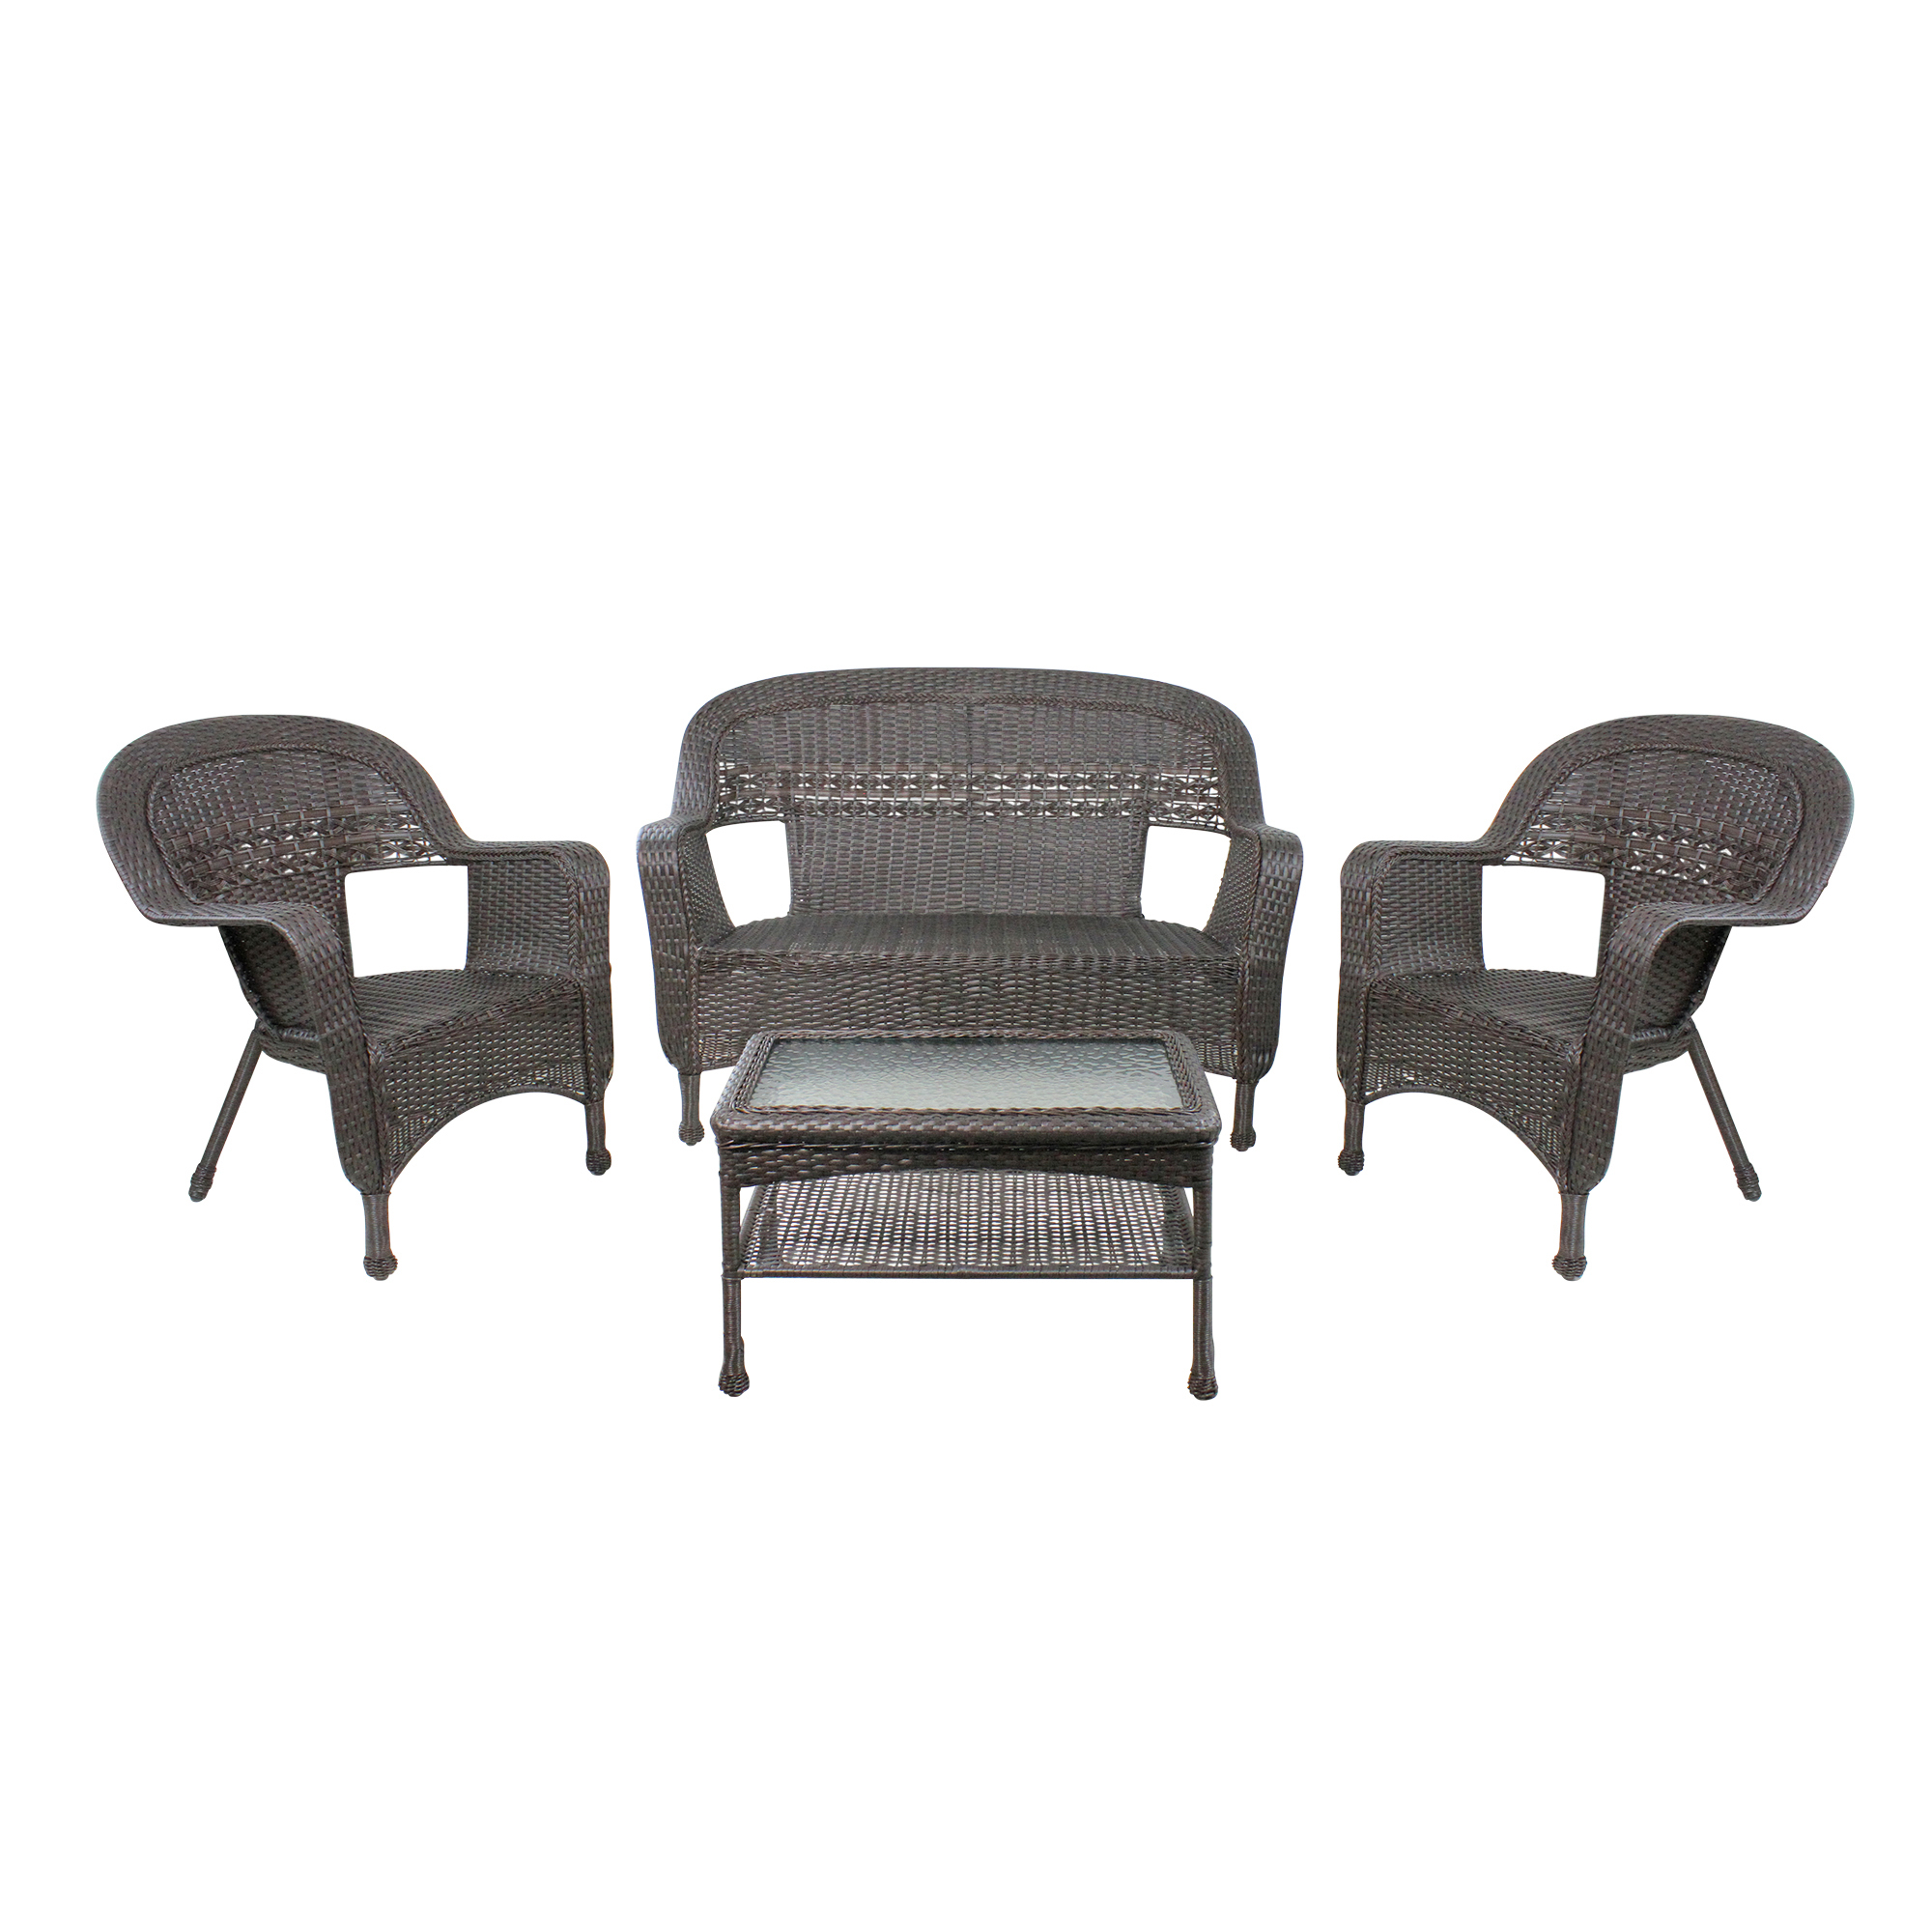 Details About Northlight 4pc Brown Wicker Outdoor Patio Furniture Set Loveseat 2 Chairs Table regarding size 2000 X 2000